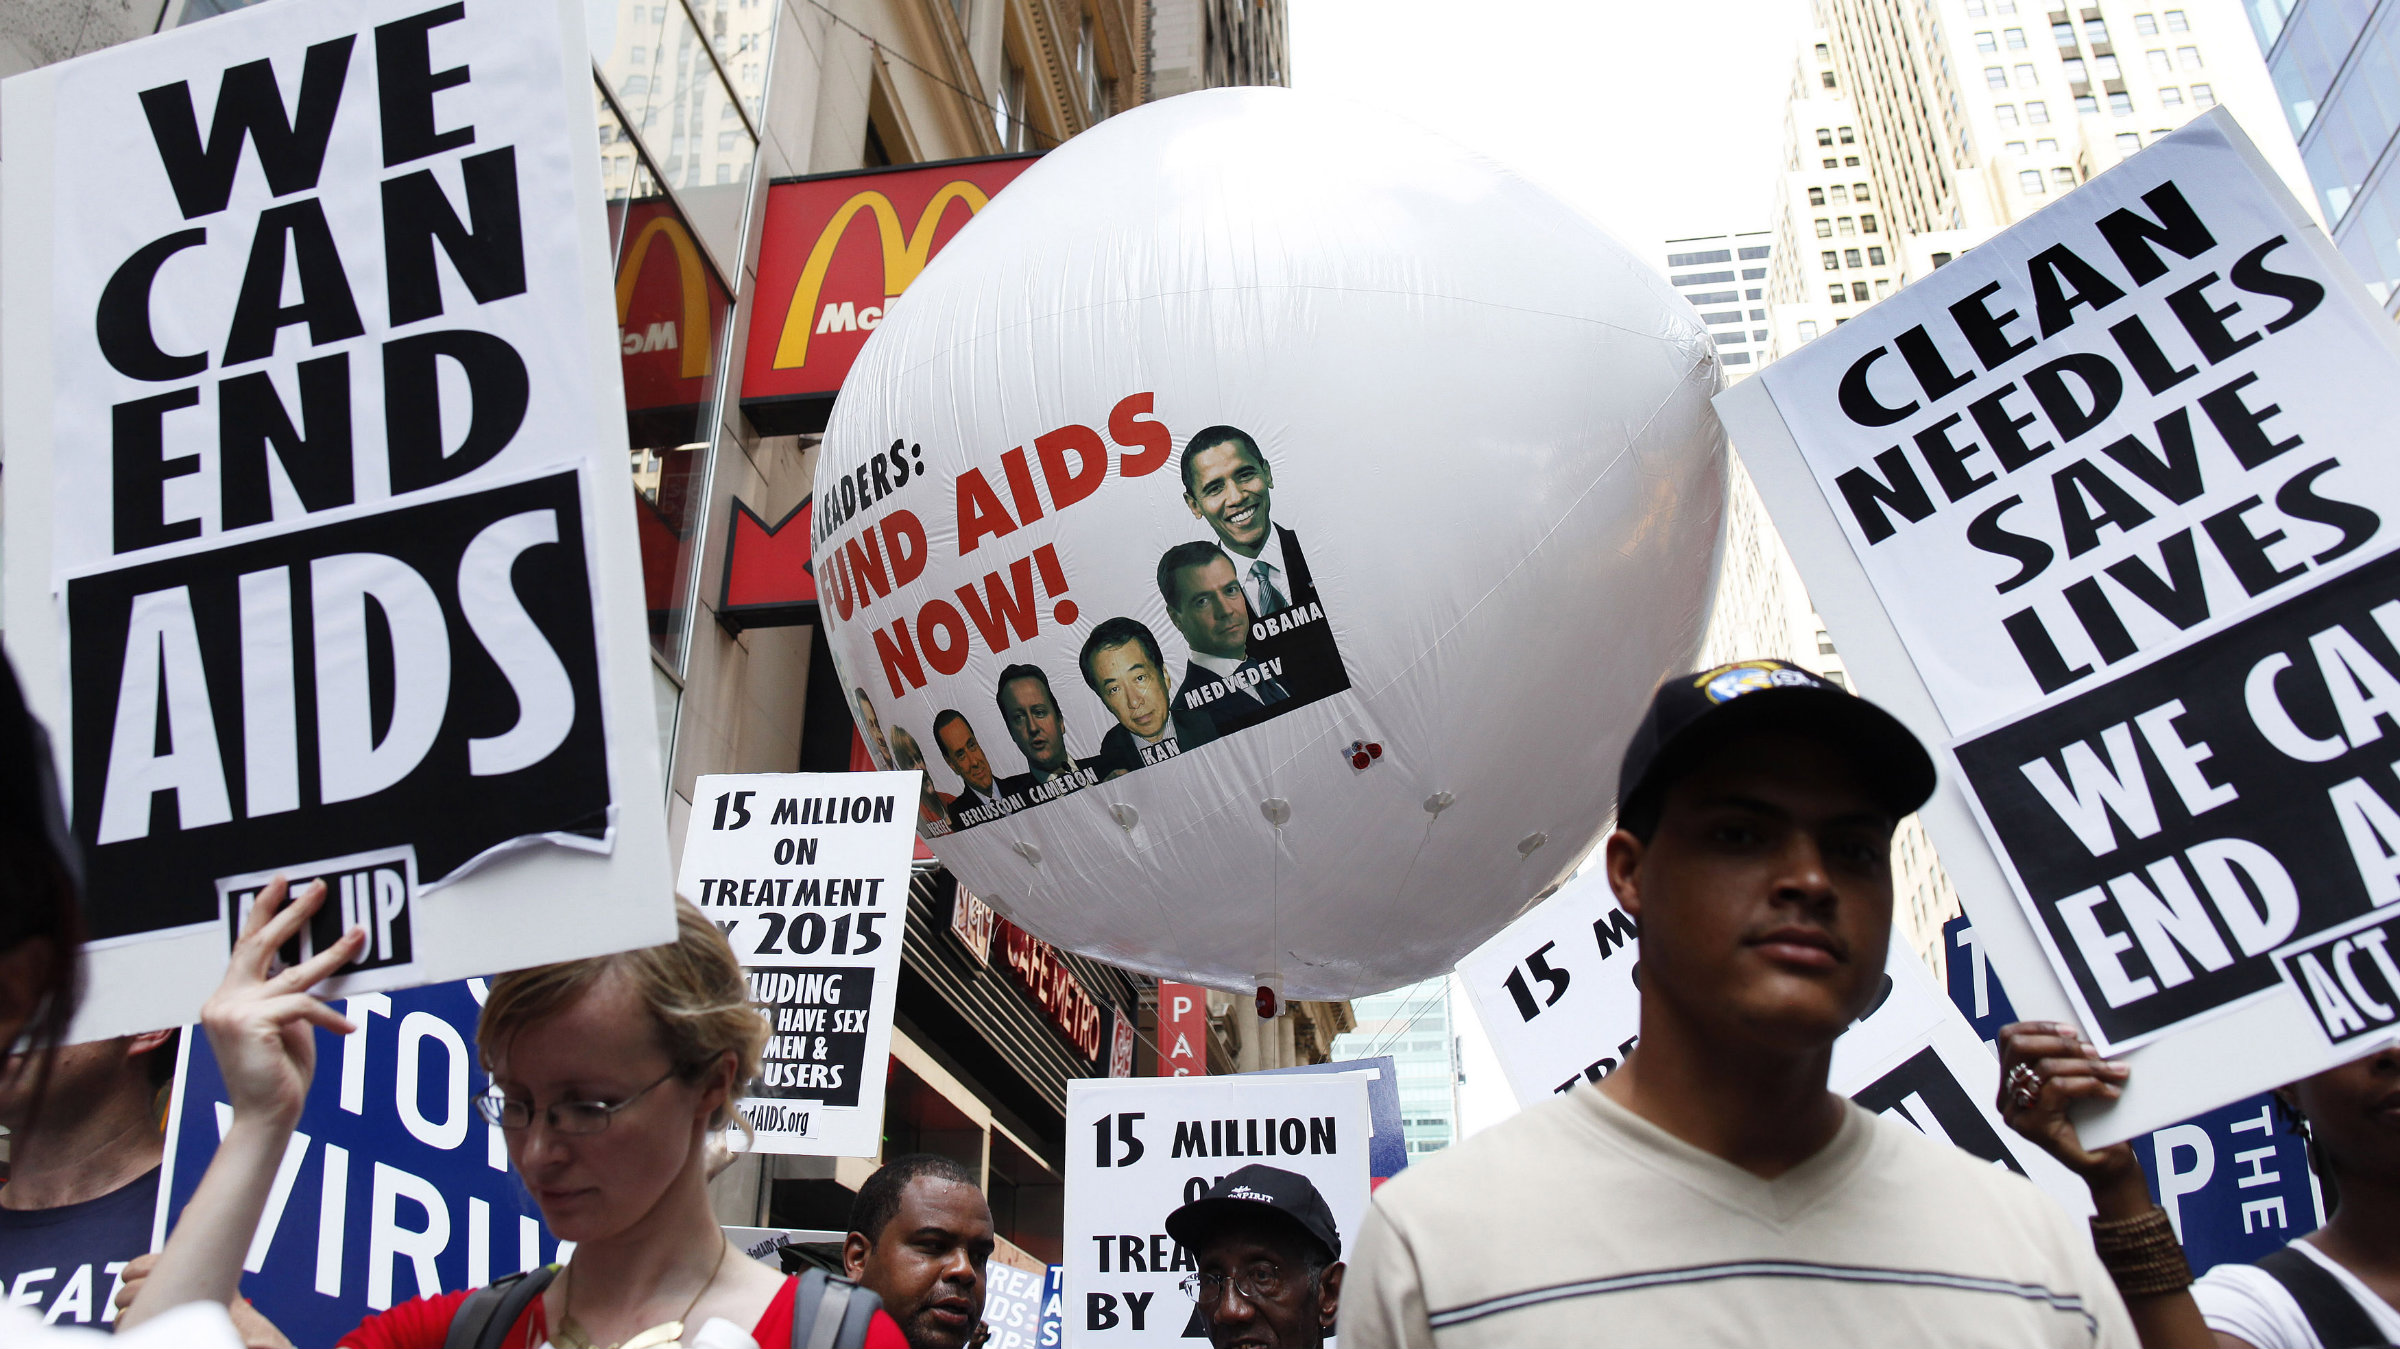 A rally against AIDS